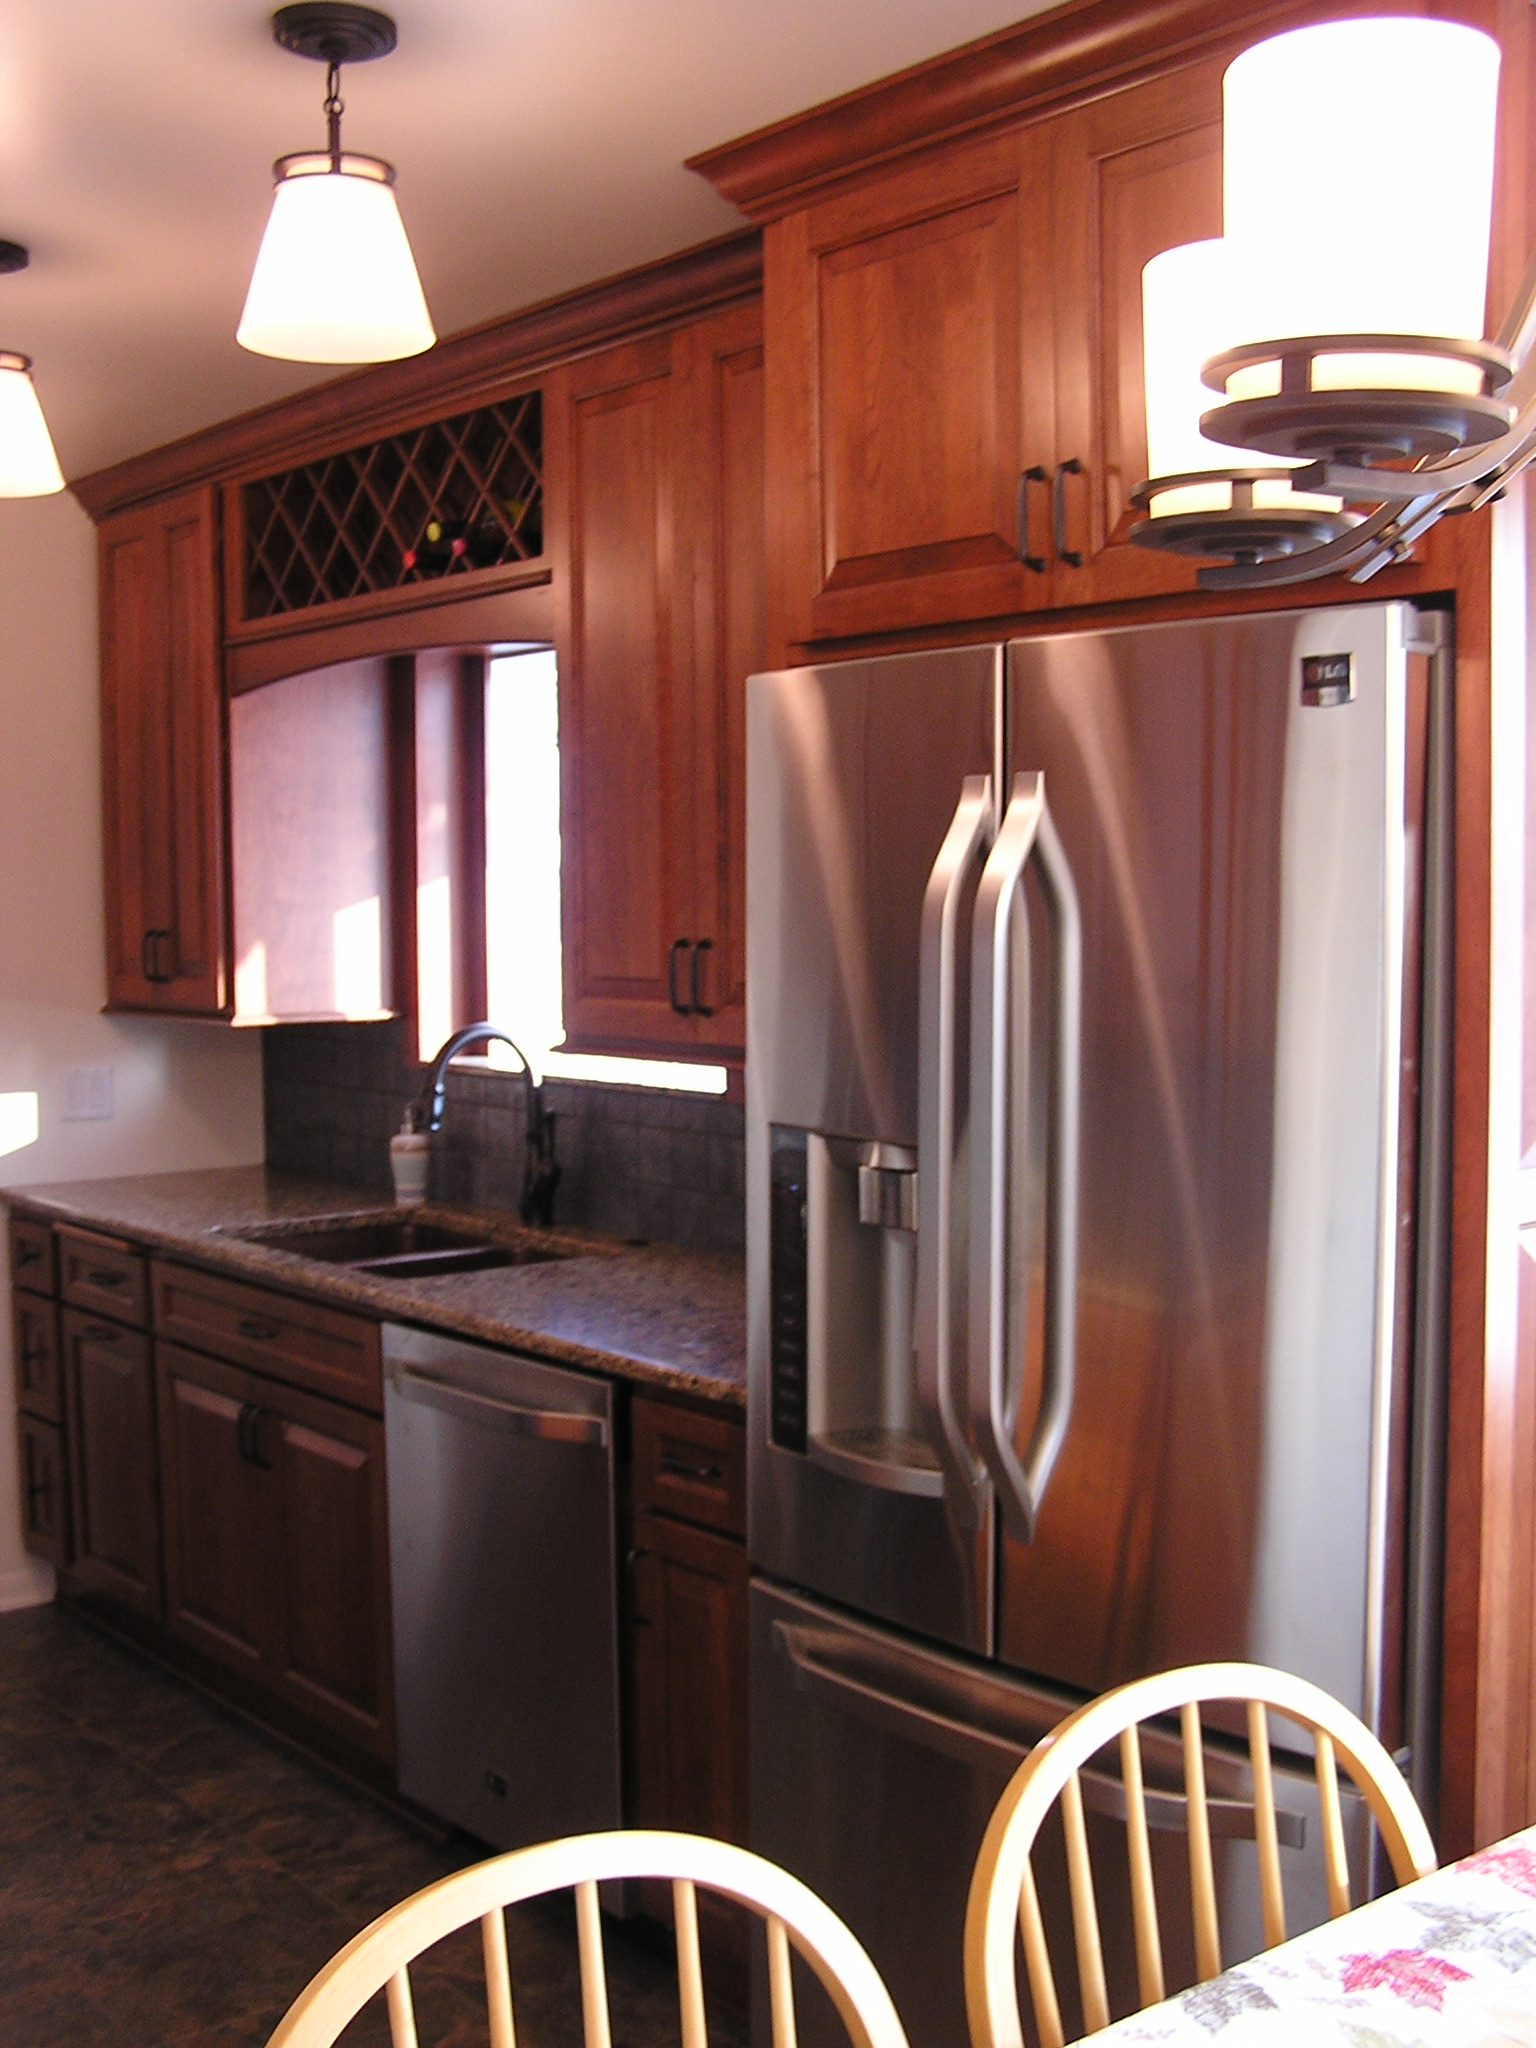 Kitchens with cherry cabinets